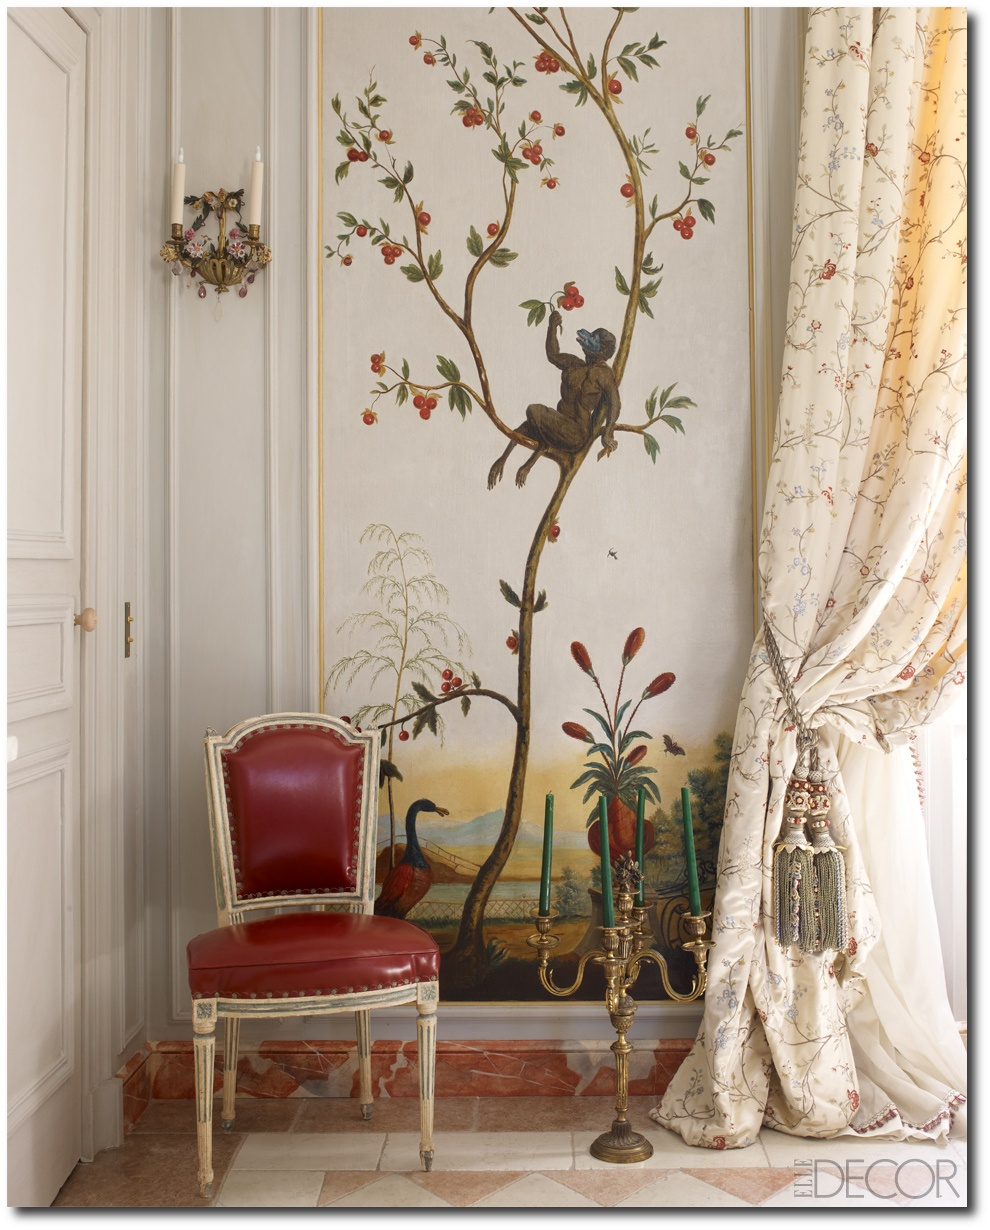 Decorating Room Ideas: The Extra Room- 6 French Provence Decorating Ideas